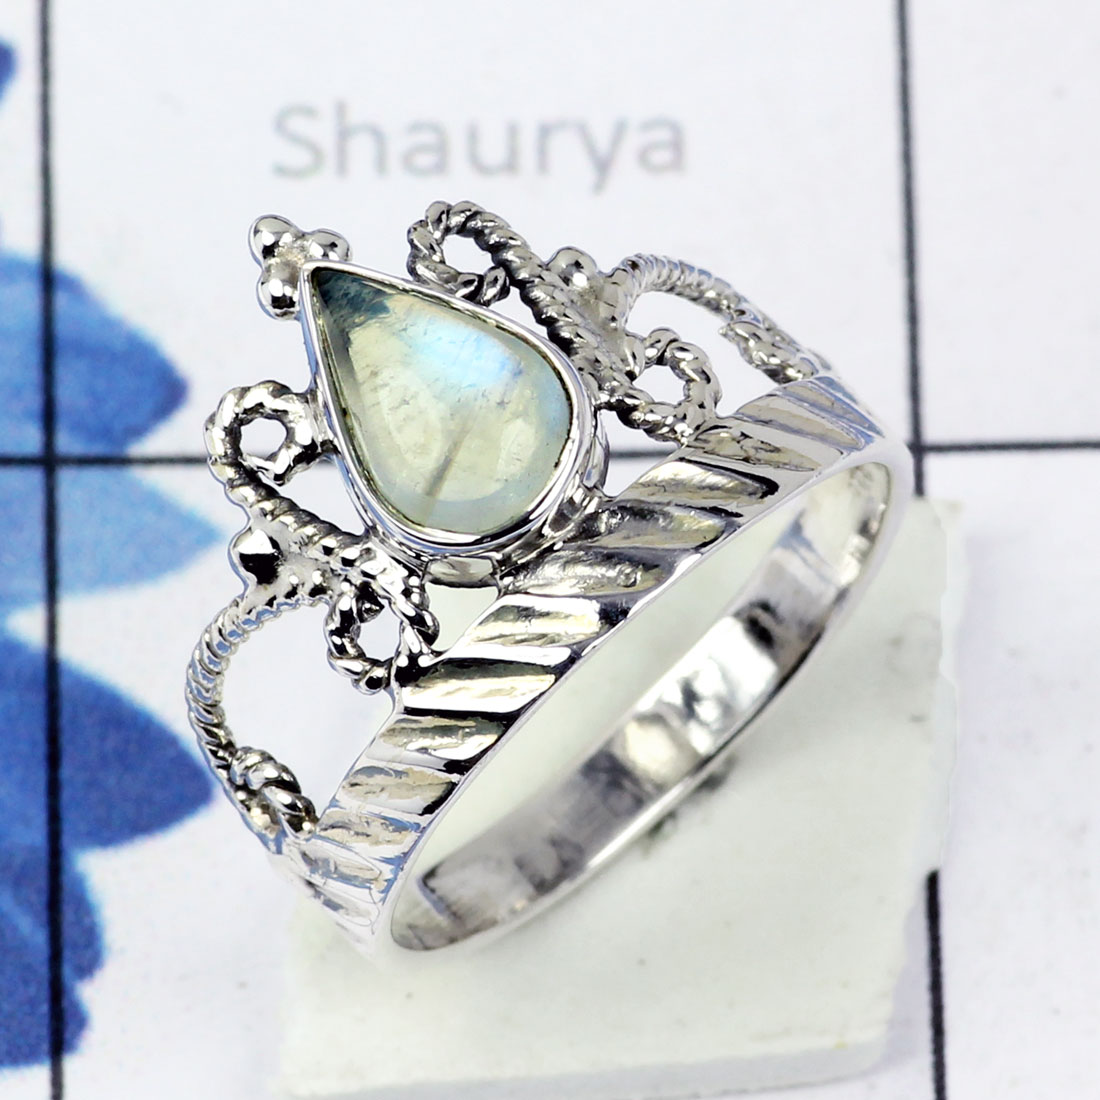 RAINBOW MOONSTONE D - BDR956- EXCLUSIVE NEW COLLECTION OF RAINBOW MOONSTONE RINGS MADE